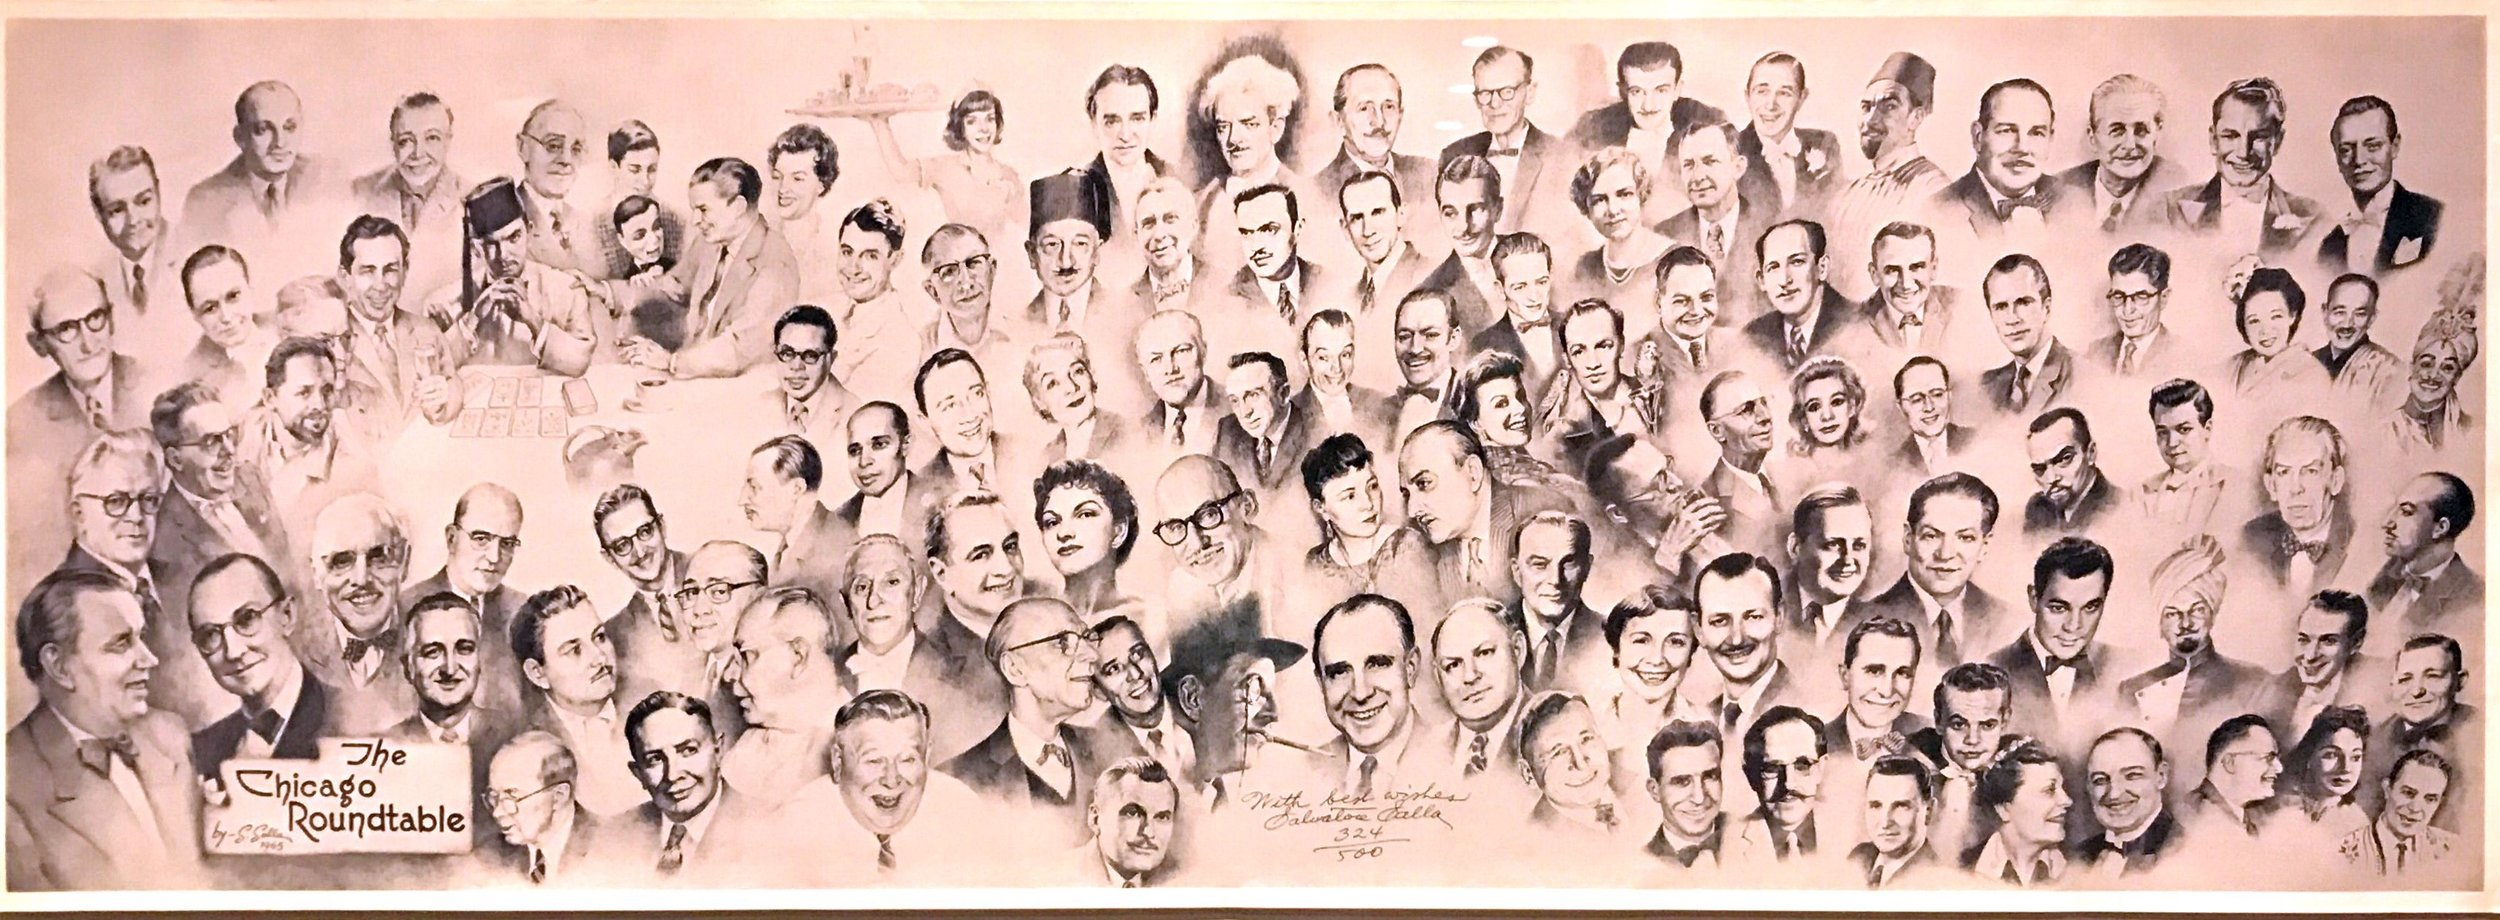 Original Salvatore Salla print-signed and numbered, displaying the original members of the Chicago Round Table.